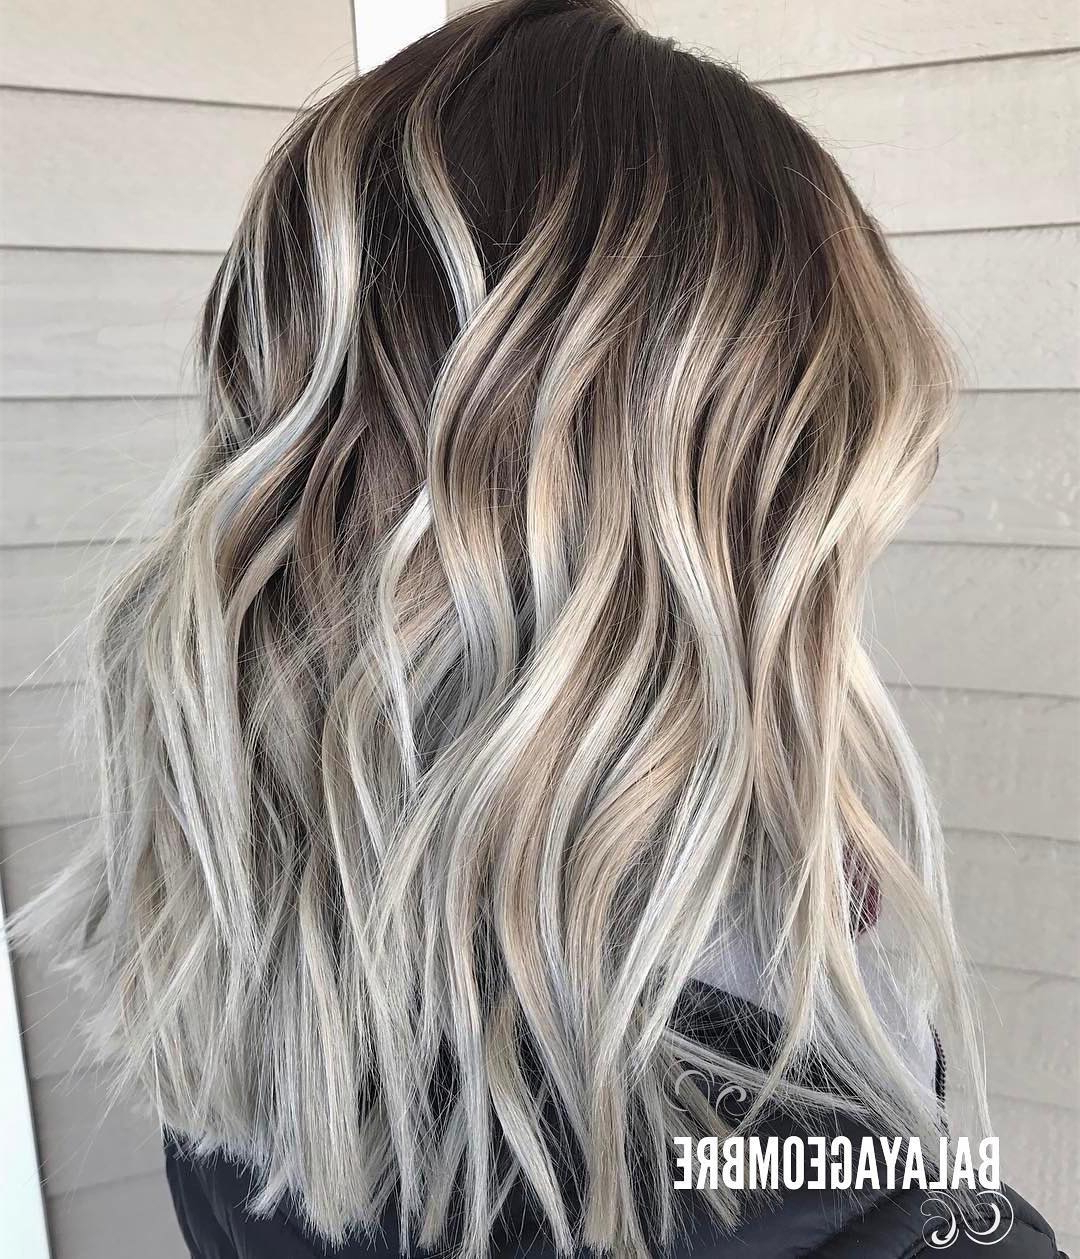 Fashionable Blonde Choppy Haircuts For Medium Hair For 10 Best Medium Layered Hairstyles 2020 – Brown & Ash Blonde (View 7 of 20)